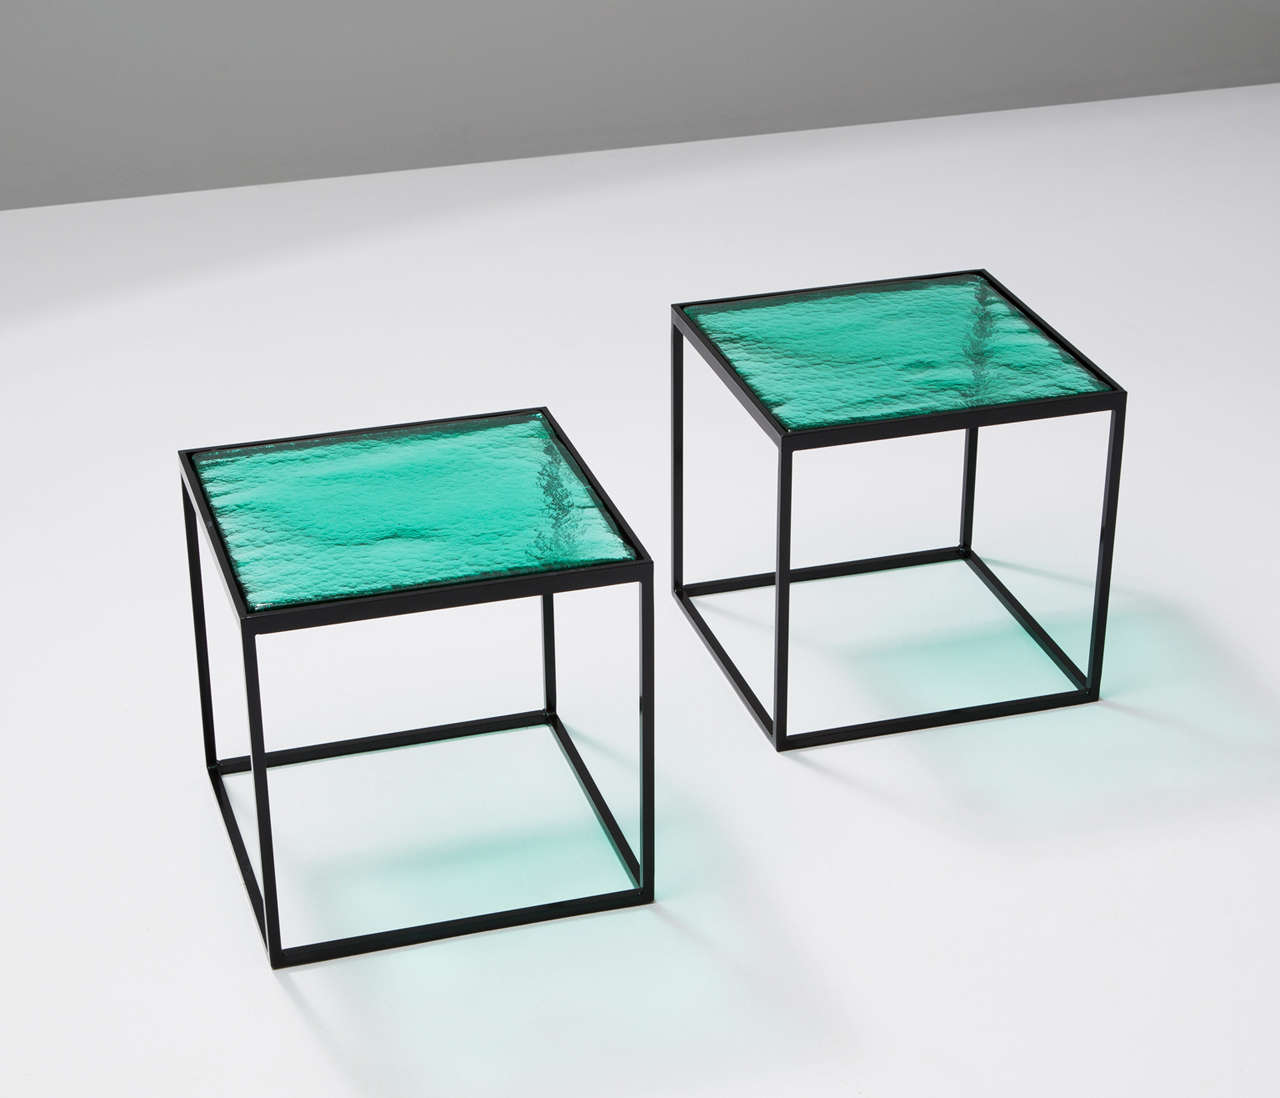 multiple green coloured glass side tables with metal box frame  - multiple green coloured glass side tables with metal box